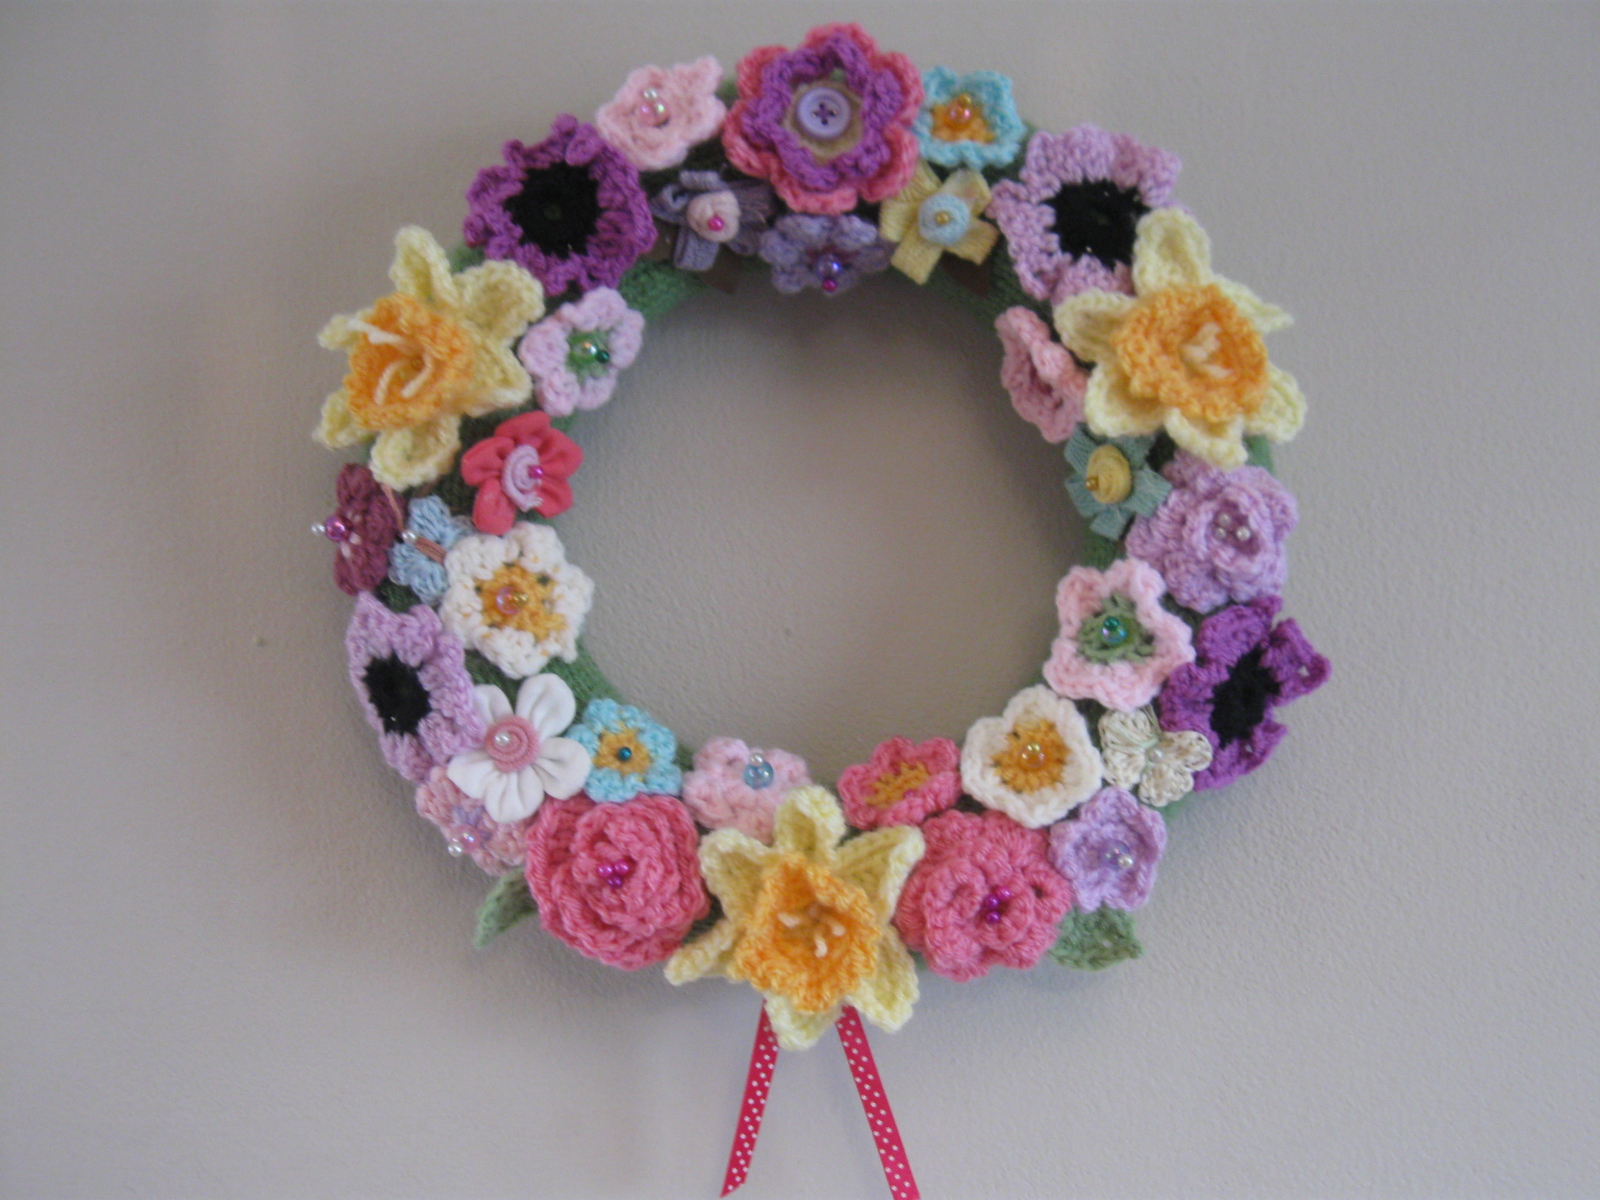 The Summerhouse by the sea: Spring Time Wreath Ta-Dah